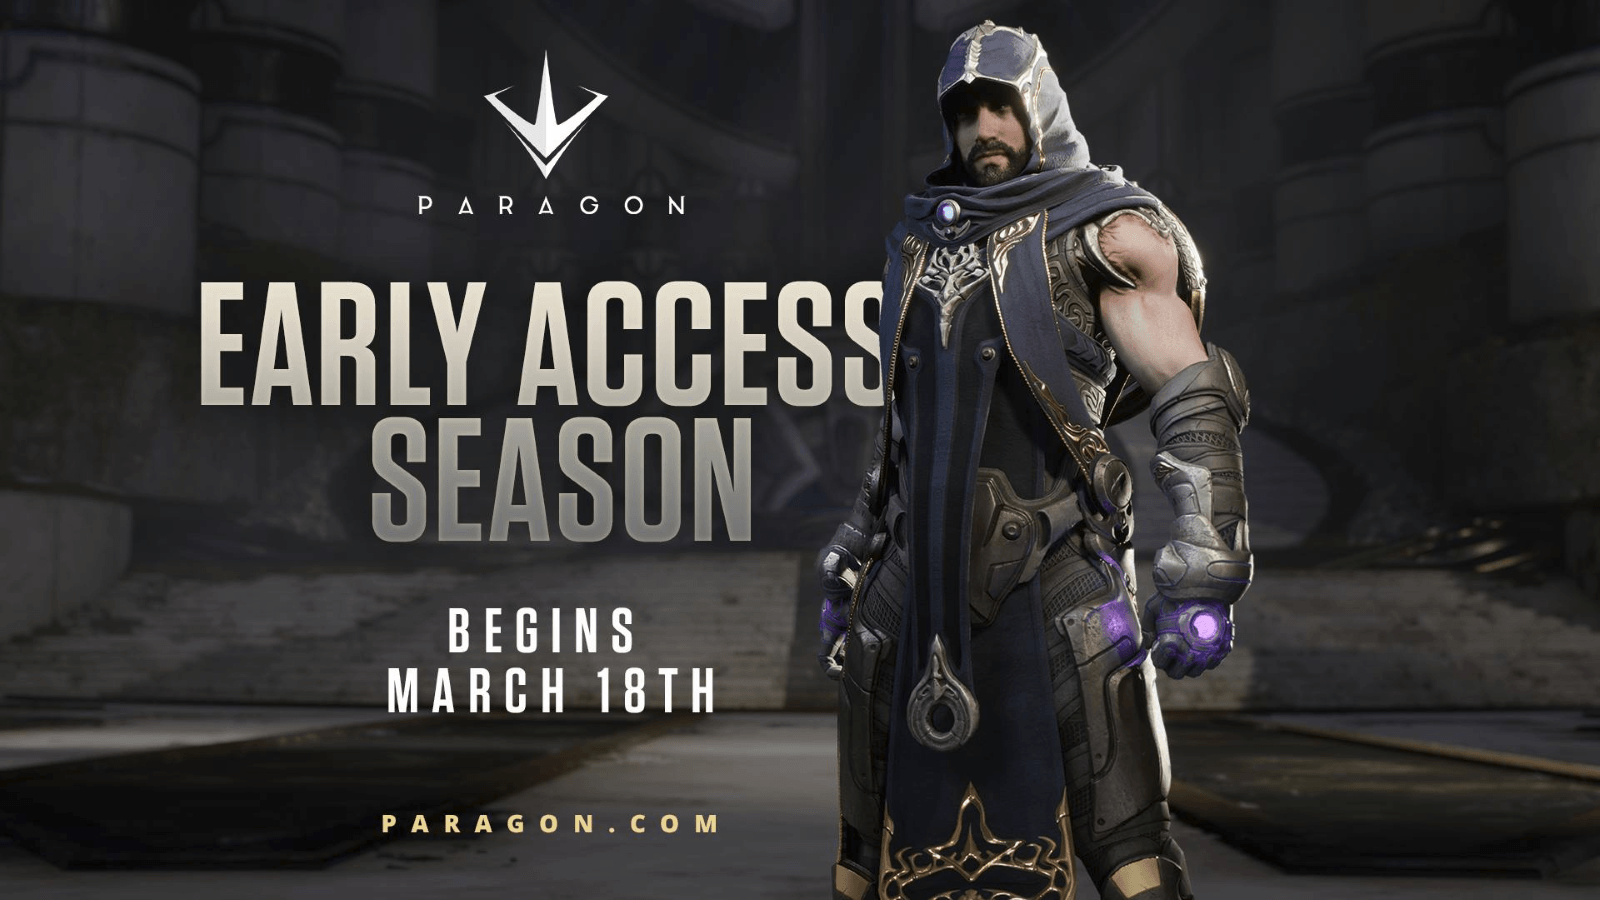 Paragon Announces Early Access Date and Free Hero Philosophy